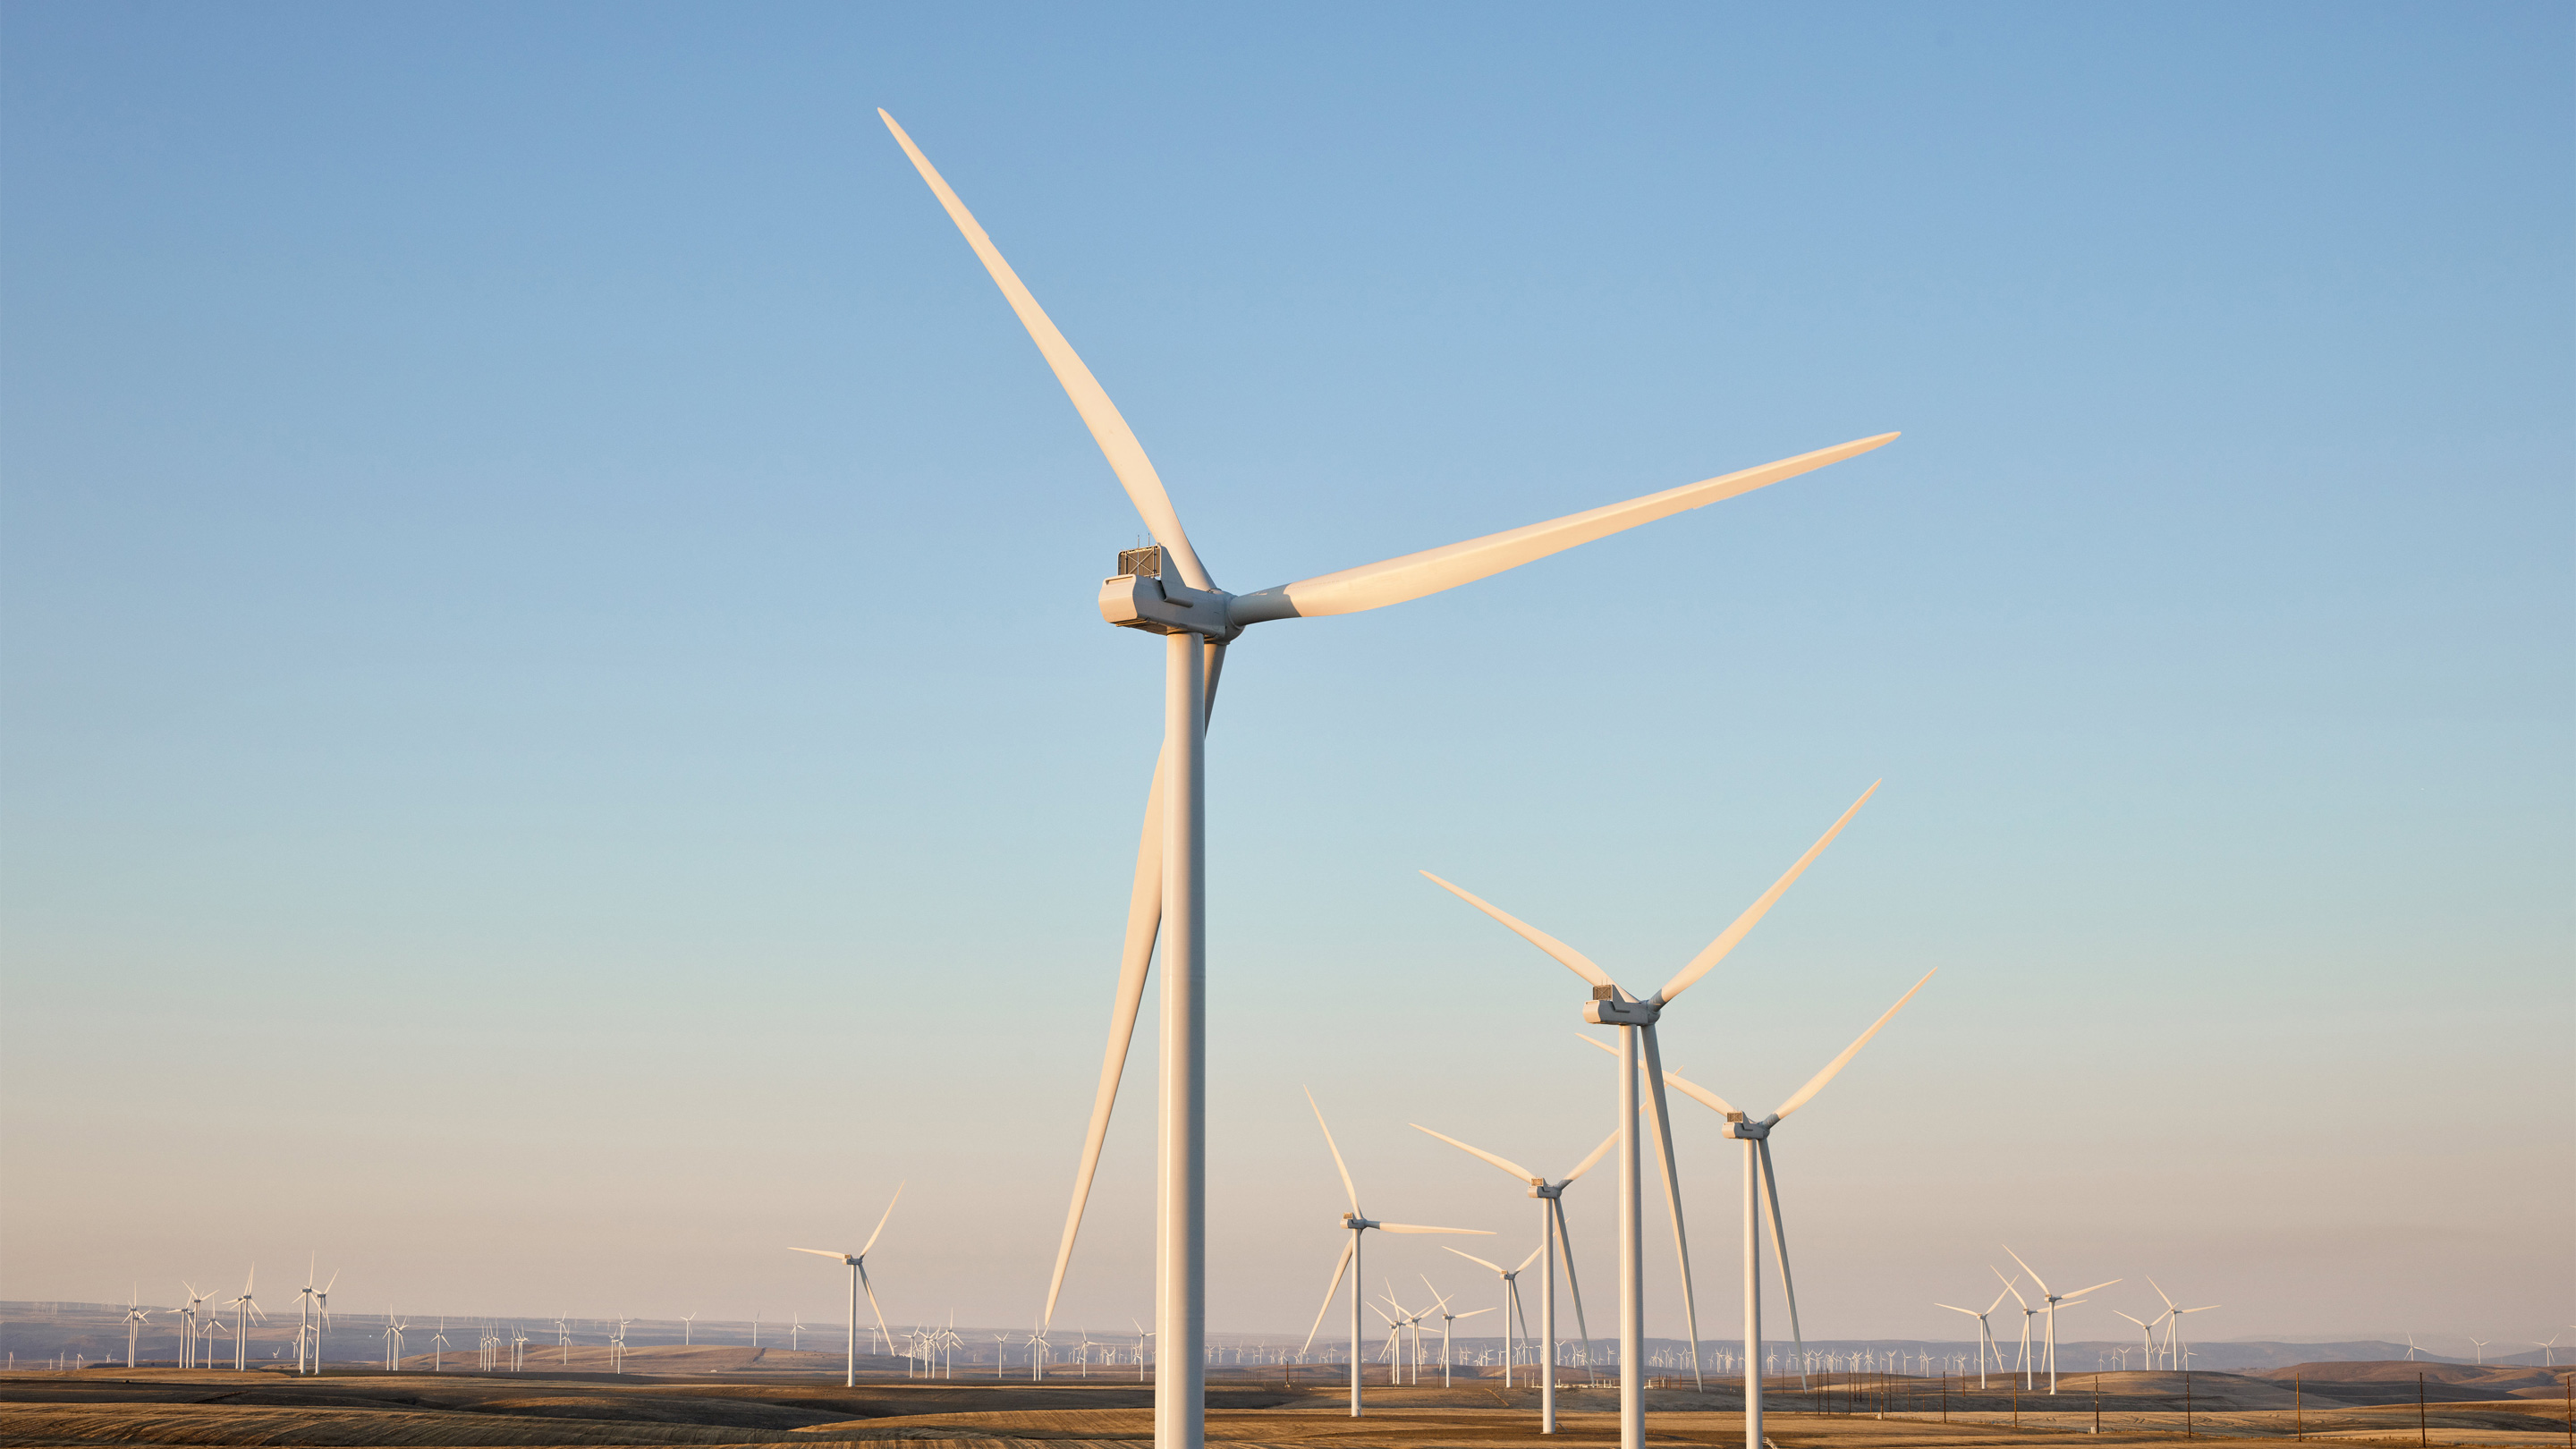 The Montague wind farm in Oregon is one of Apple's largest projects at 200 megawatts and powers Apple's Prineville data center.